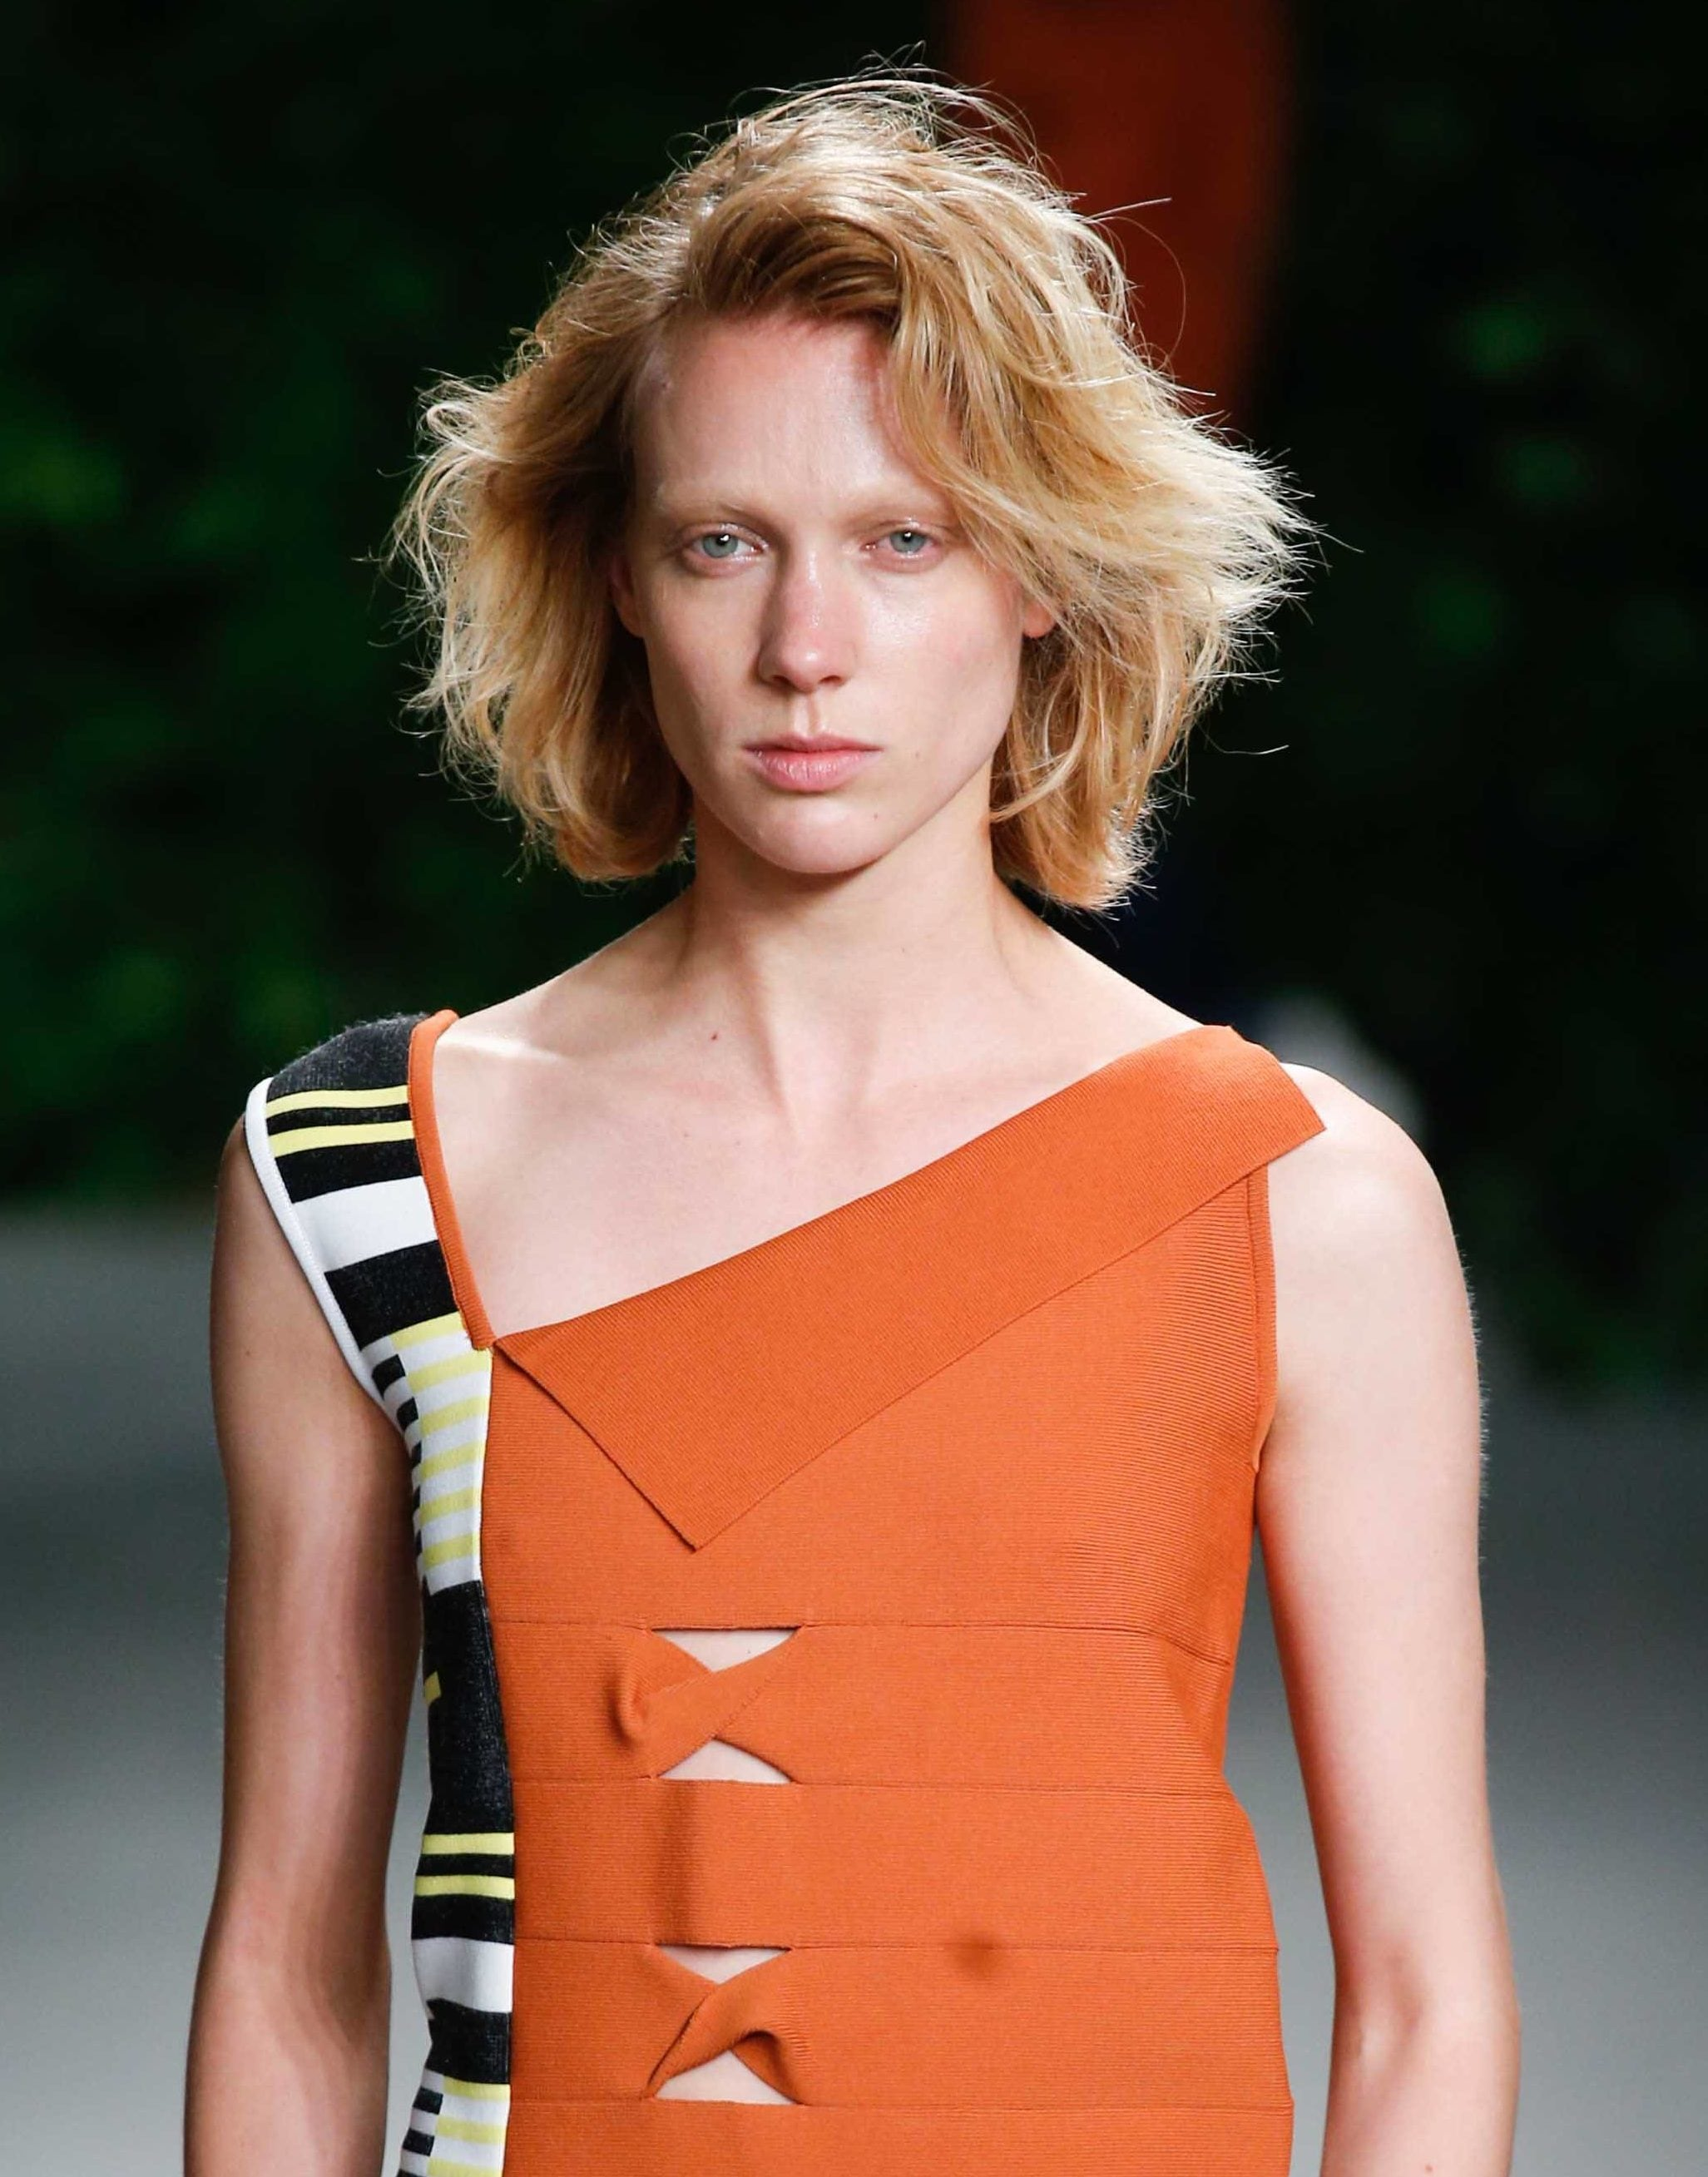 Feathered hairstyles: All Things Hair - IMAGE - feathered strawberry blonde bob